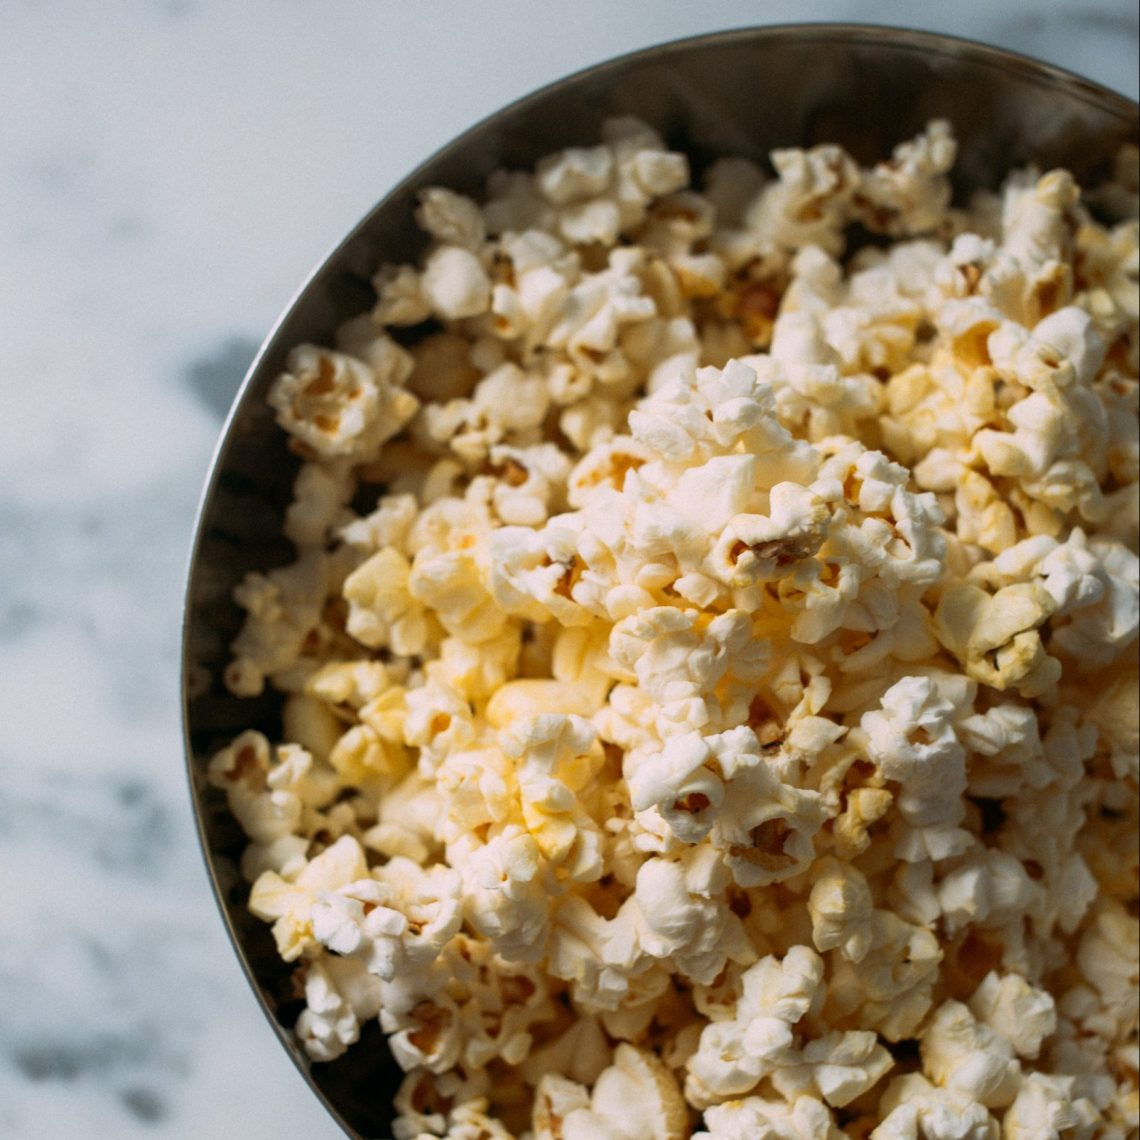 Product Review: Microwave Popcorn